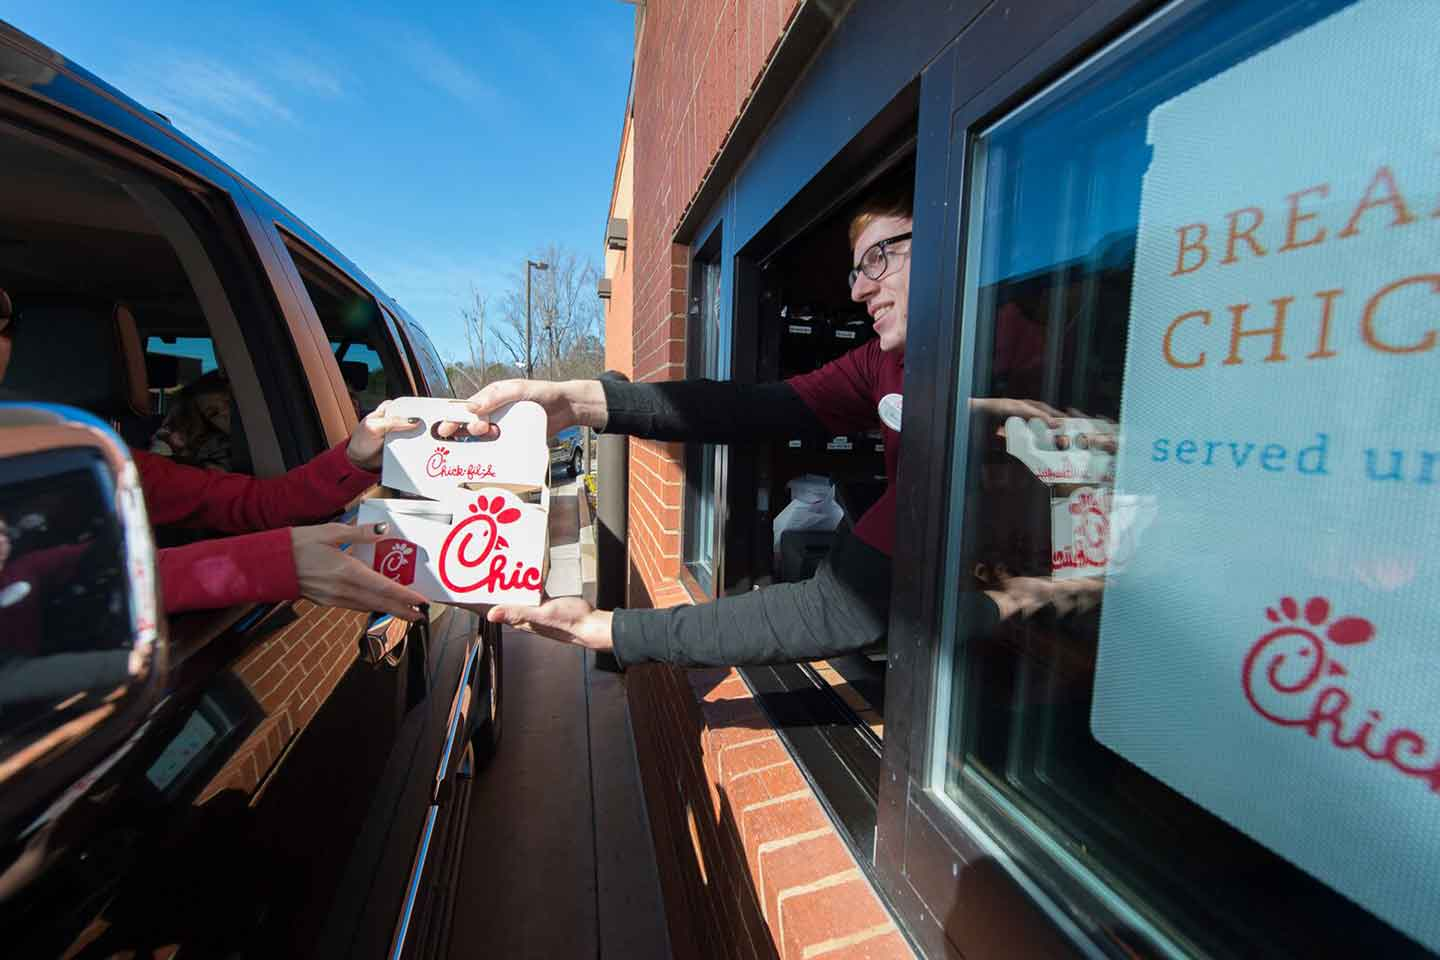 Chick-fil-a drive thru mobile ordering